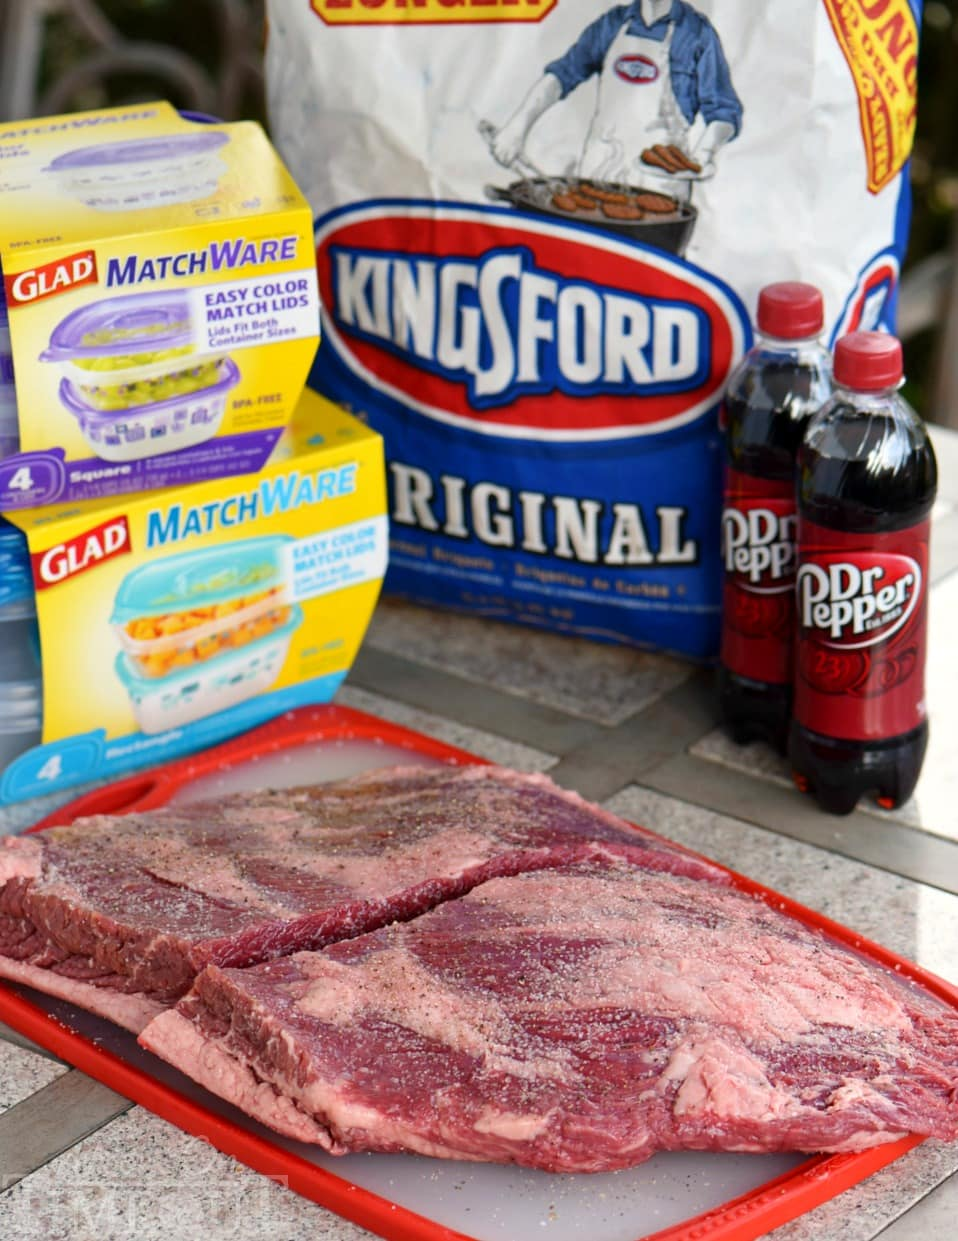 Your new favorite - Beef Brisket with Dr Pepper Barbecue Sauce! Feeding a crowd? Look no further for the perfect recipe to serve up from your grill! The Dr Pepper Barbecue Sauce is going to blow your mind!